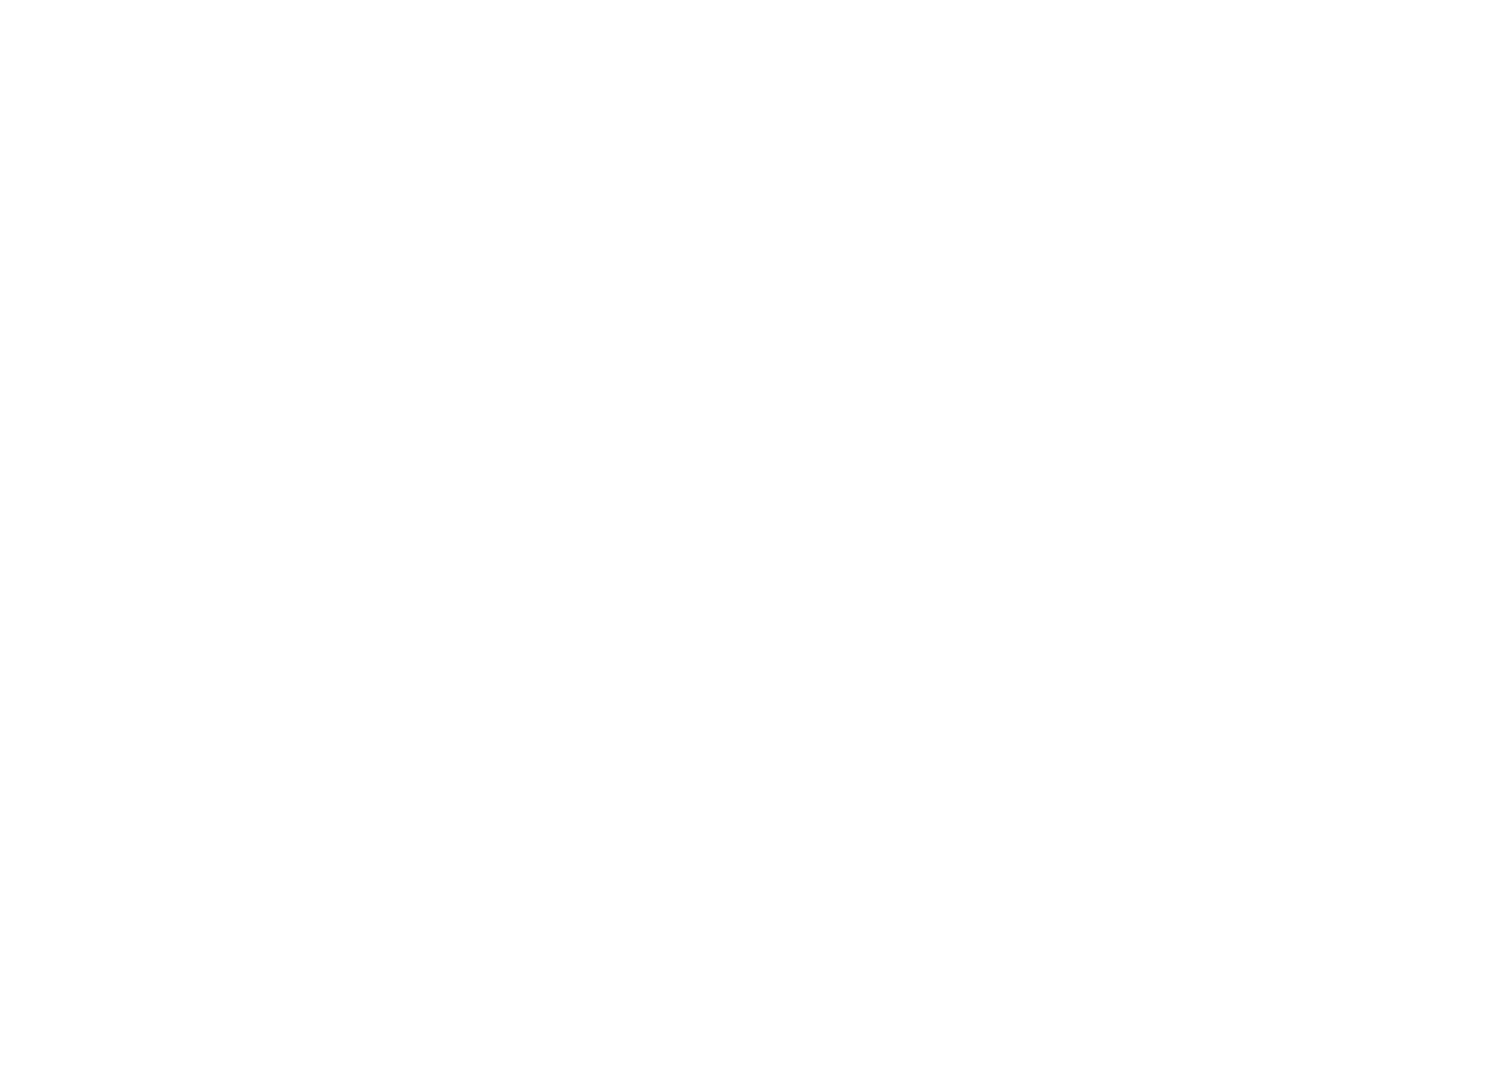 Ashley Schulman Photography